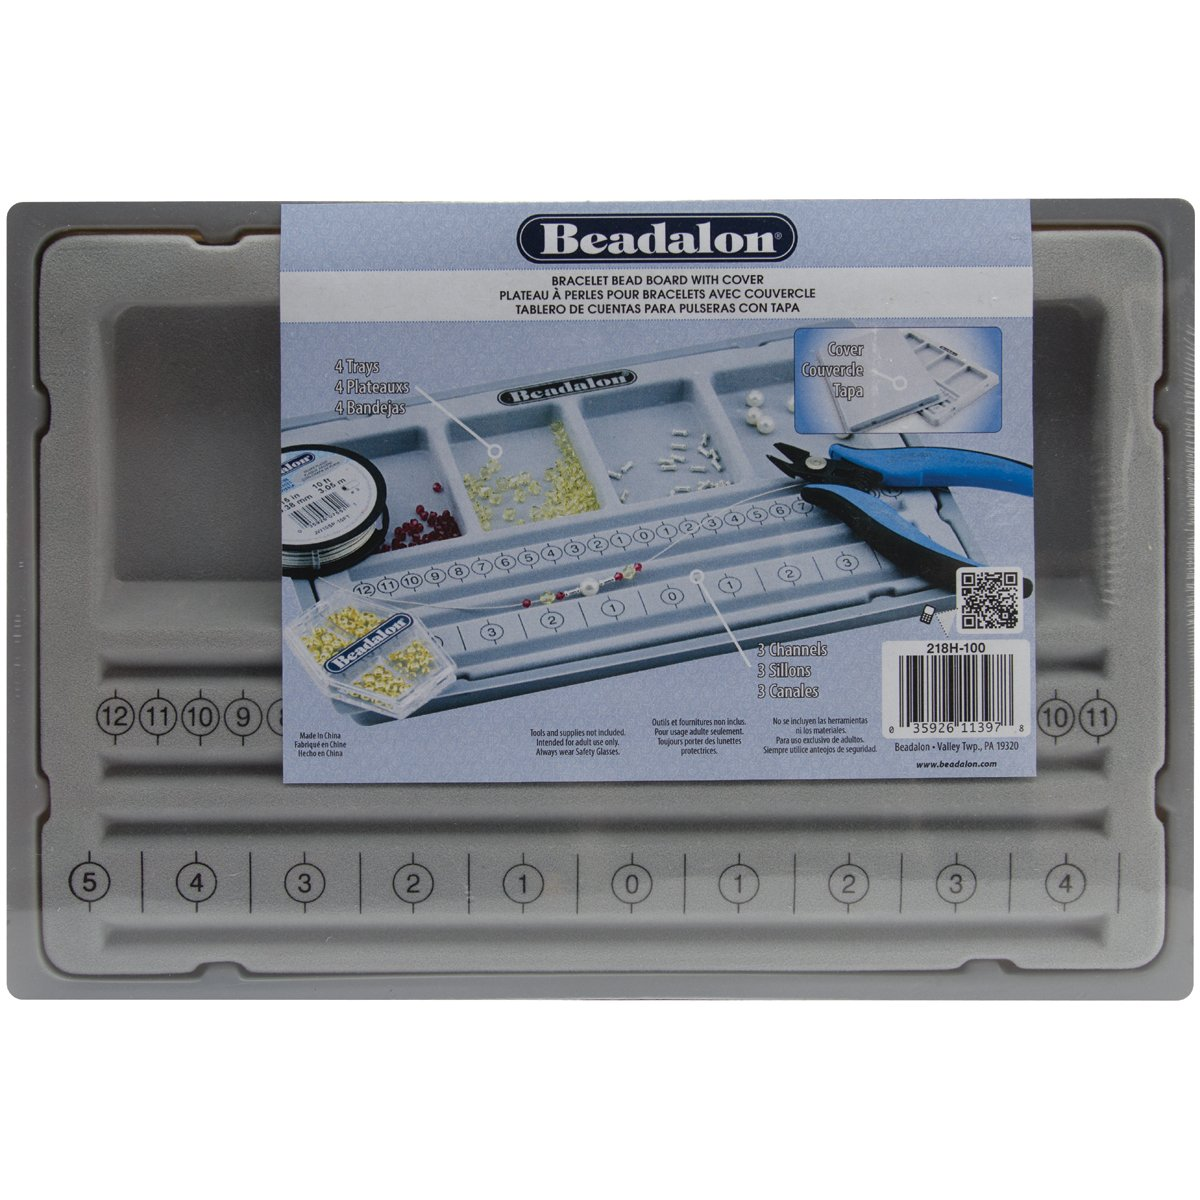 Beadalon Bracelet Bead Board W/Cover-7.75-inch x 11.25-inch, Other, Multicoloured Notions Marketing 218H-100